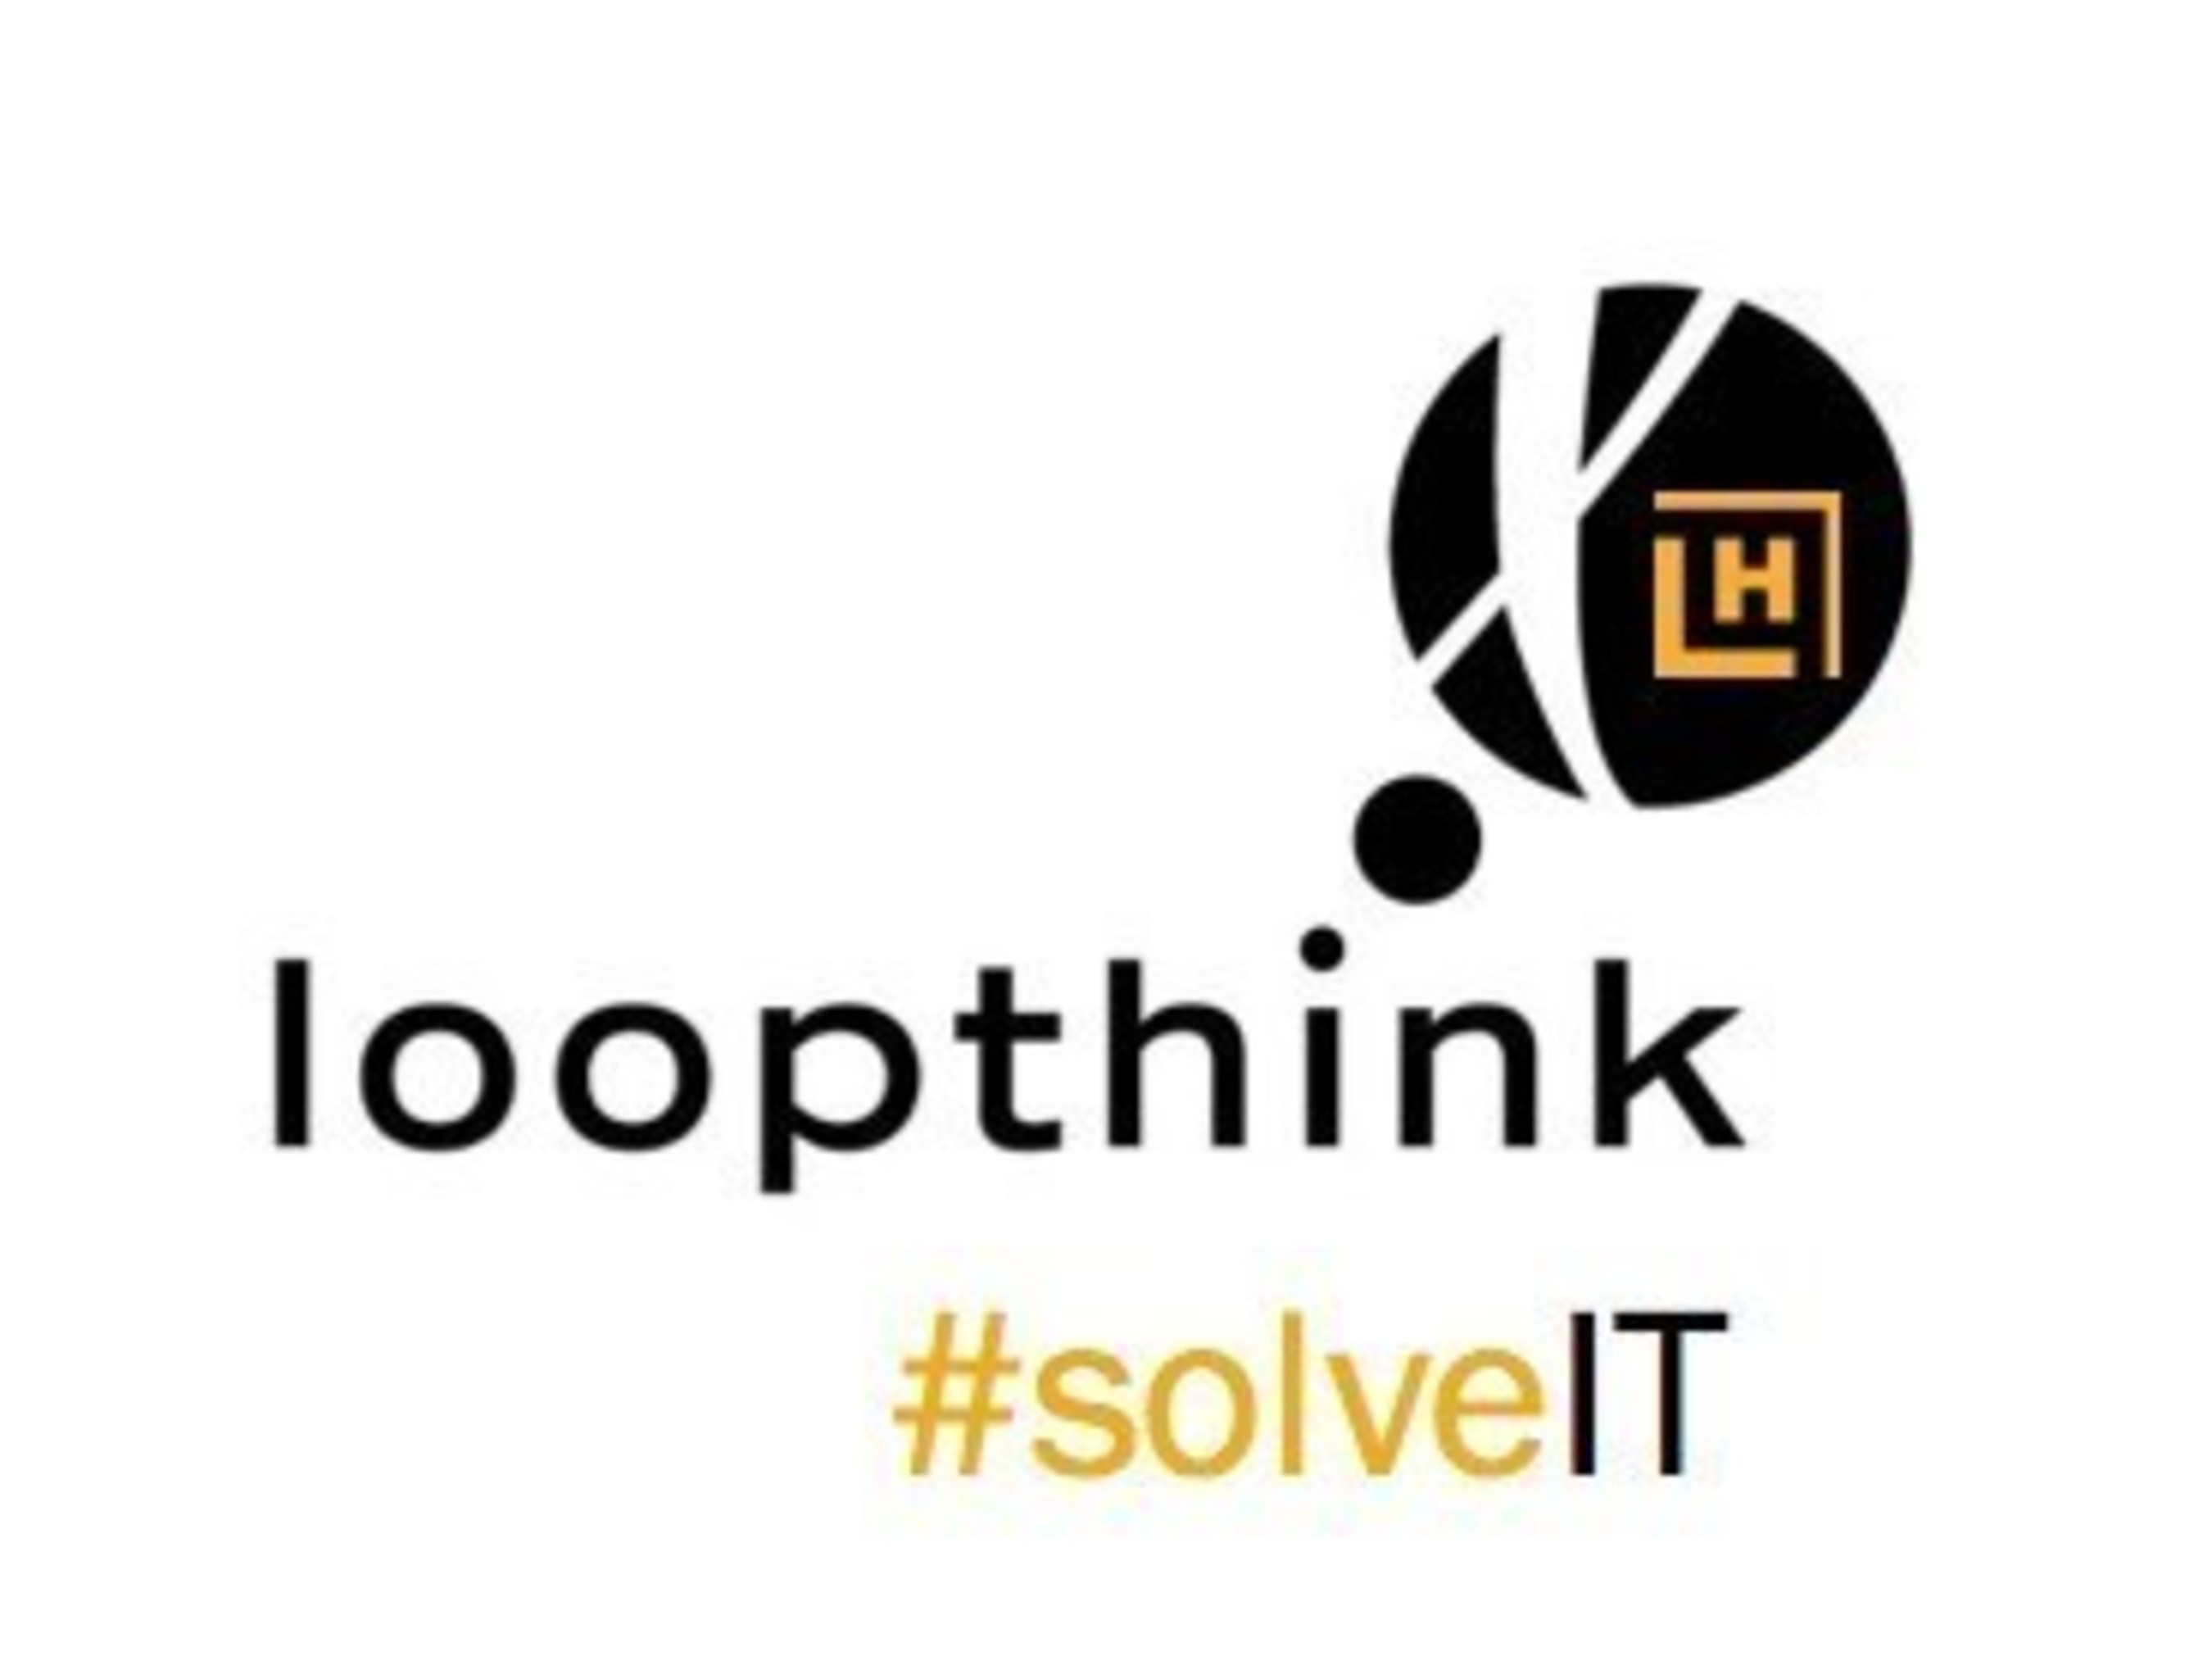 Launch Haus Announces the 'loopthink #solveIT' Mastermind Series in Northern Colorado and Phoenix Arizona